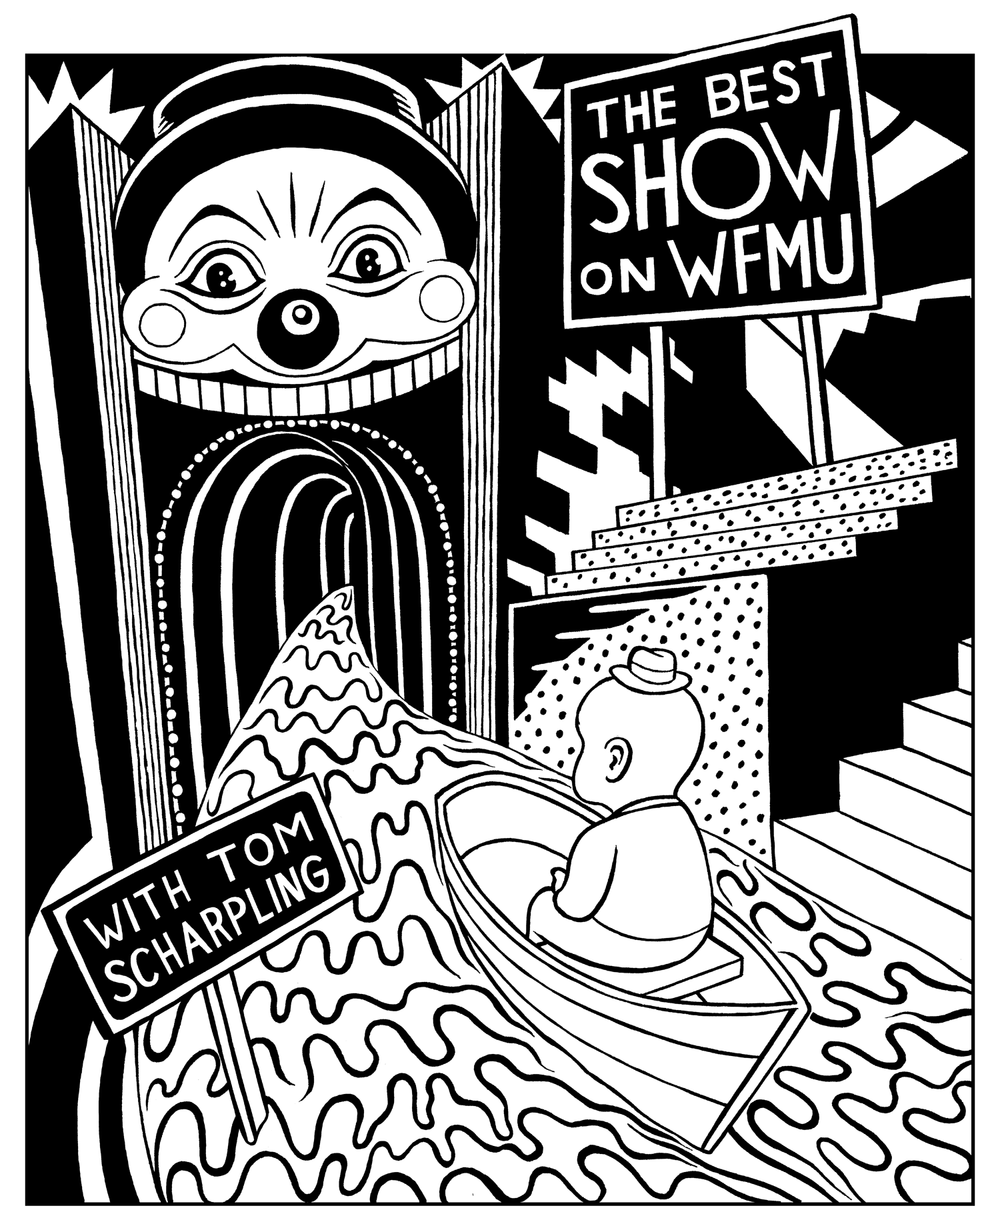 The Best Show on WFMU T-shirt, 2009